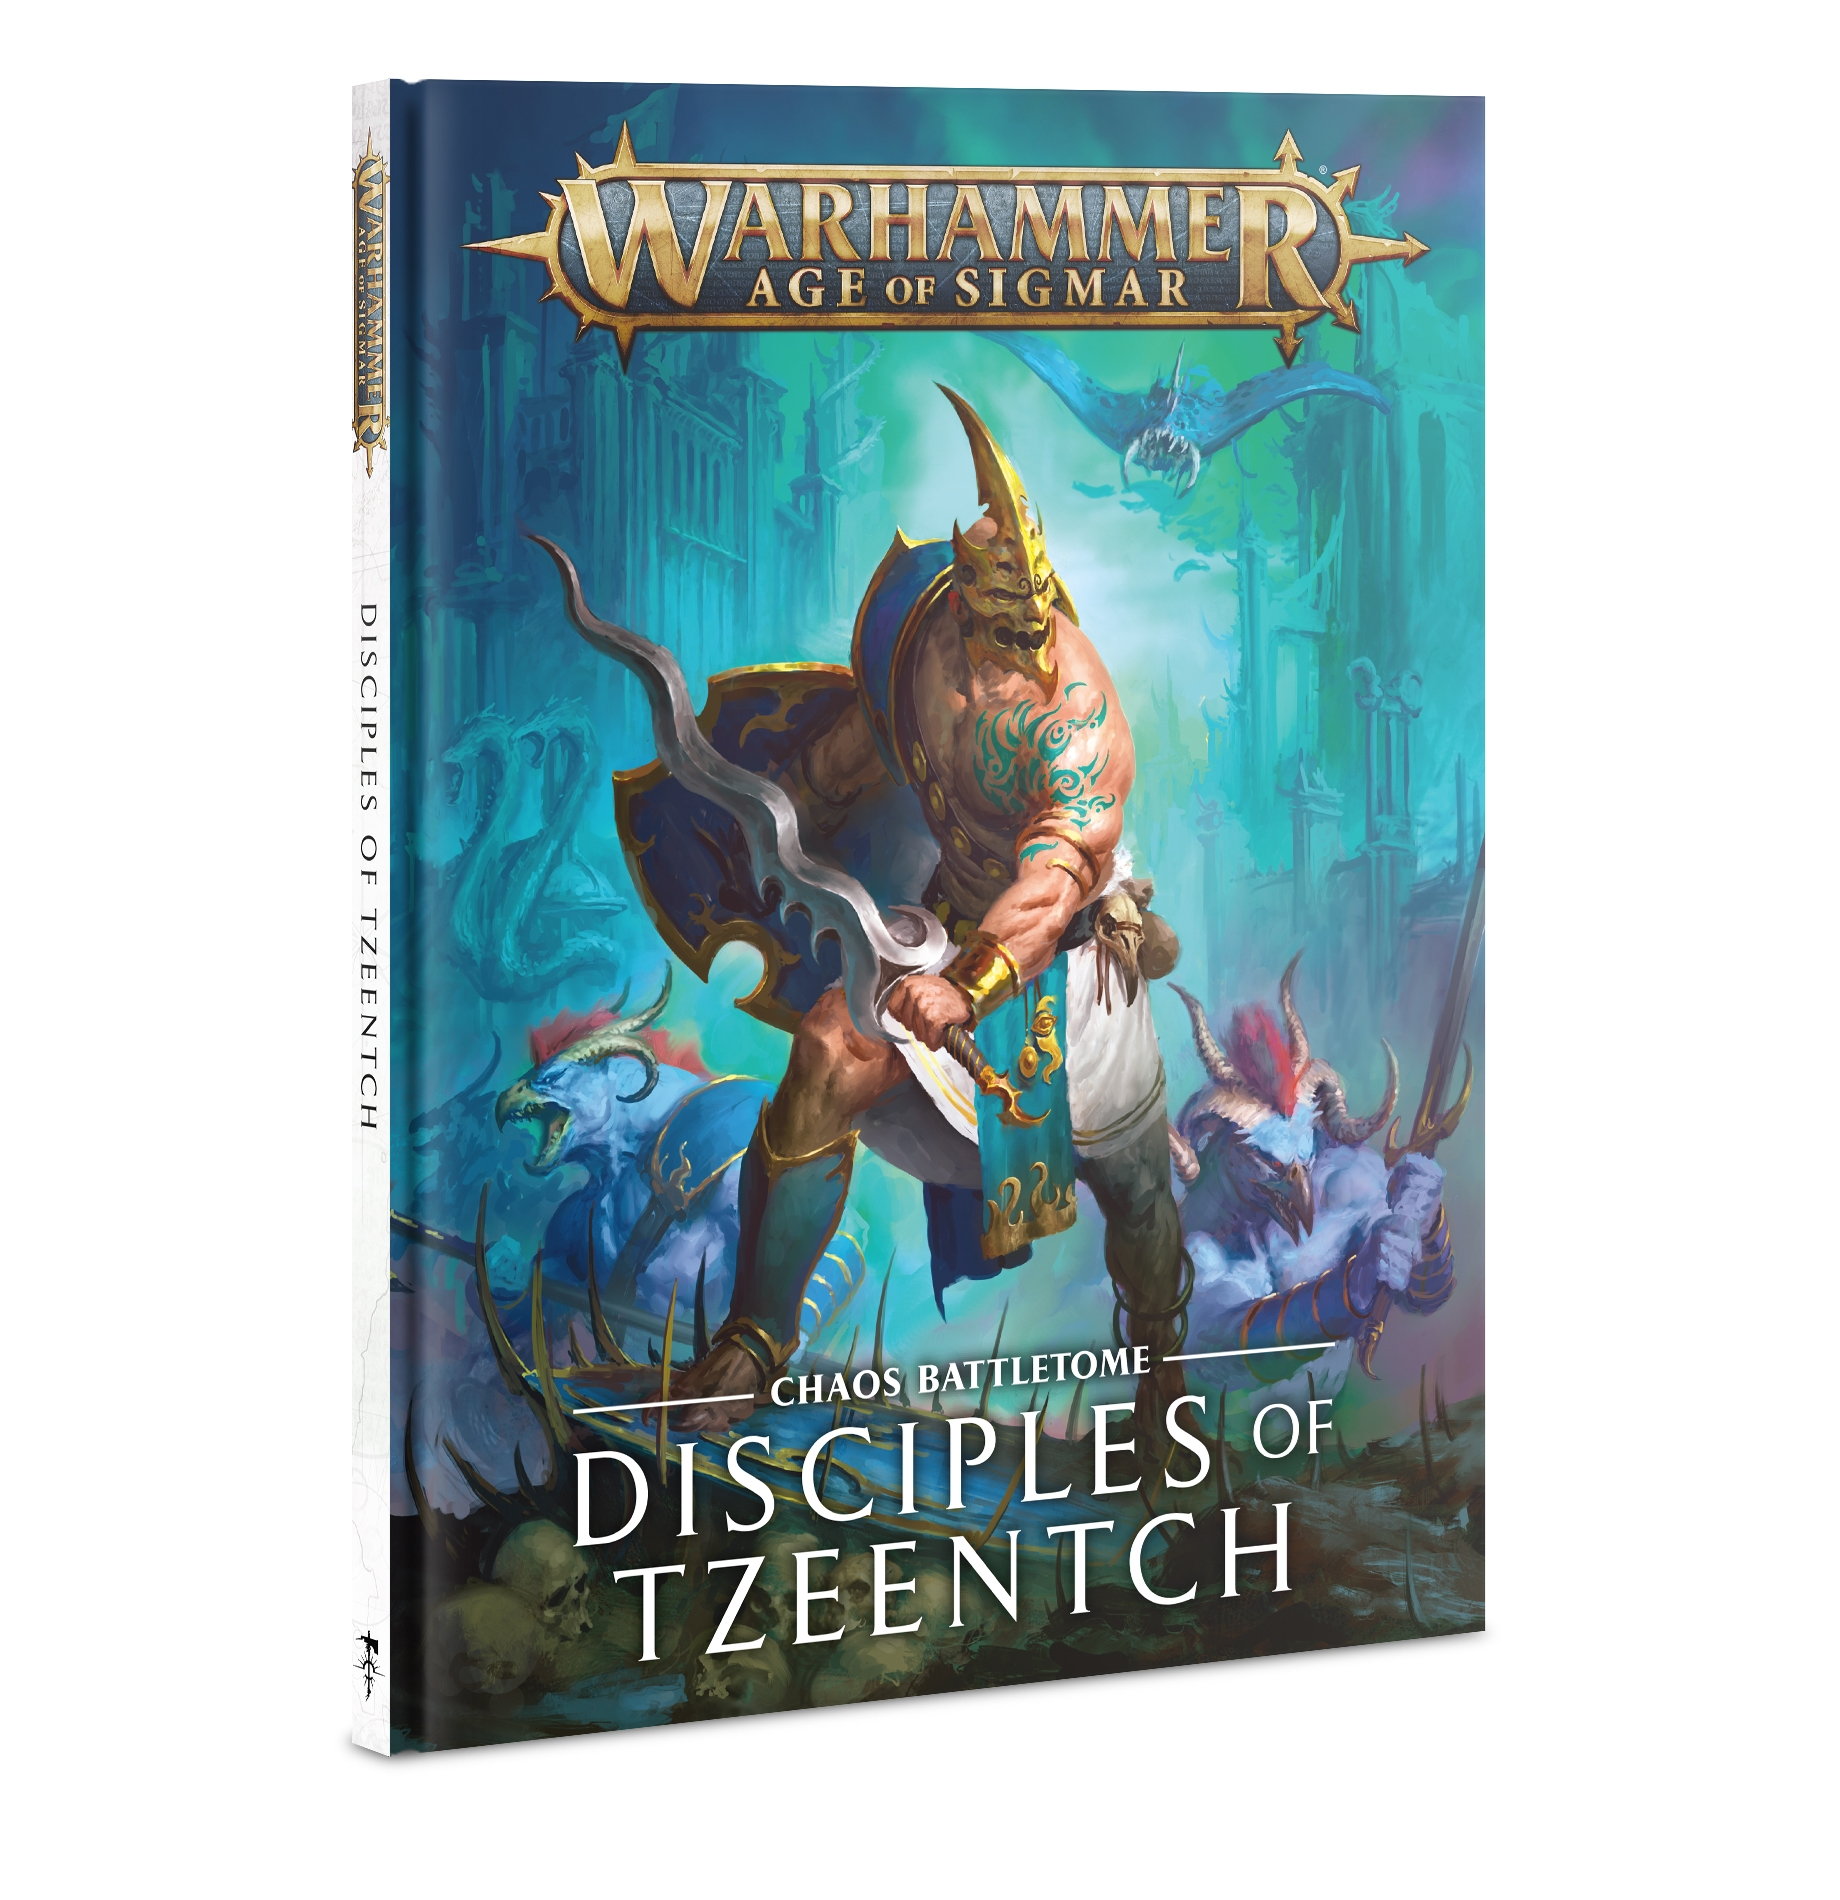 Warhammer Age of Sigmar: Battletome- DISCIPLES OF TZEENTCH (2020 Edition)